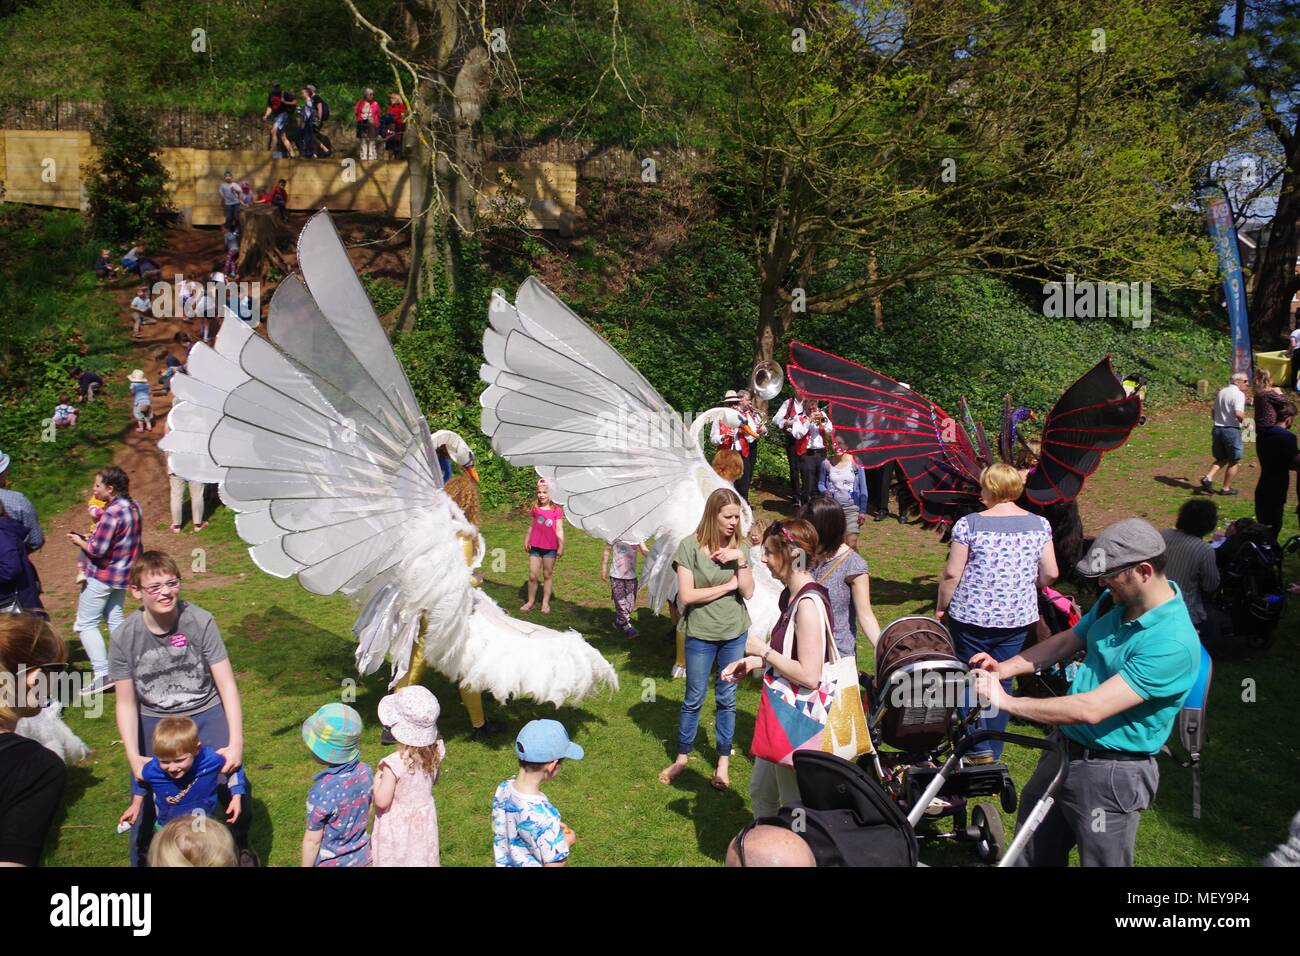 Kinematic Swan Puppet Procession in Rougemont Gardens for ramm's Carnival of the Animals Anniversary. Exeter, Devon, UK. April, 2018. - Stock Image